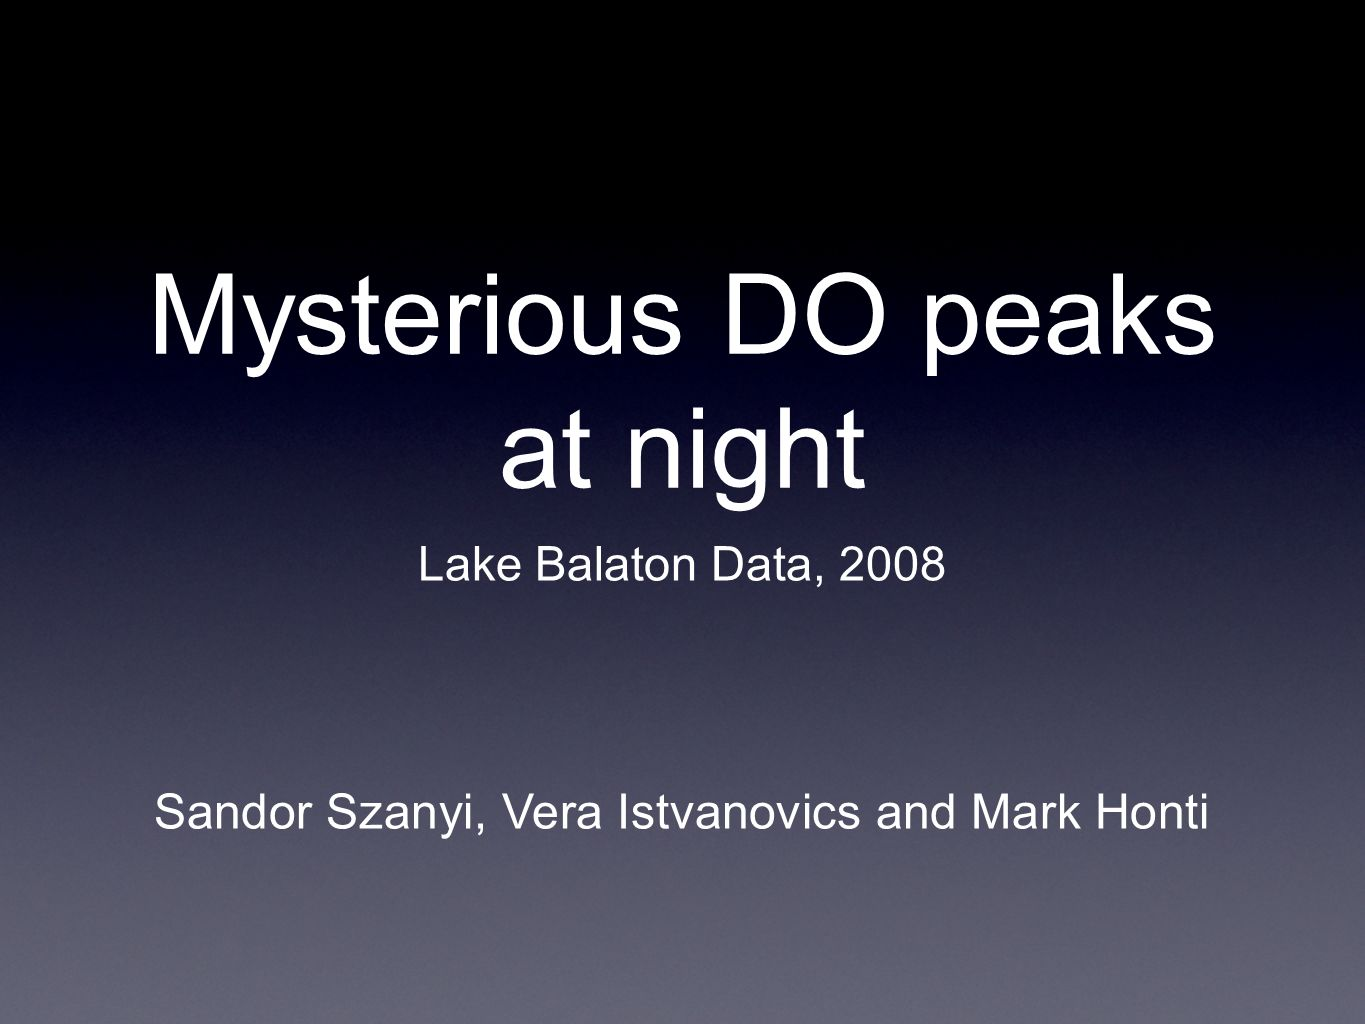 Mysterious DO peaks at night Lake Balaton Data, 2008 Sandor Szanyi, Vera Istvanovics and Mark Honti